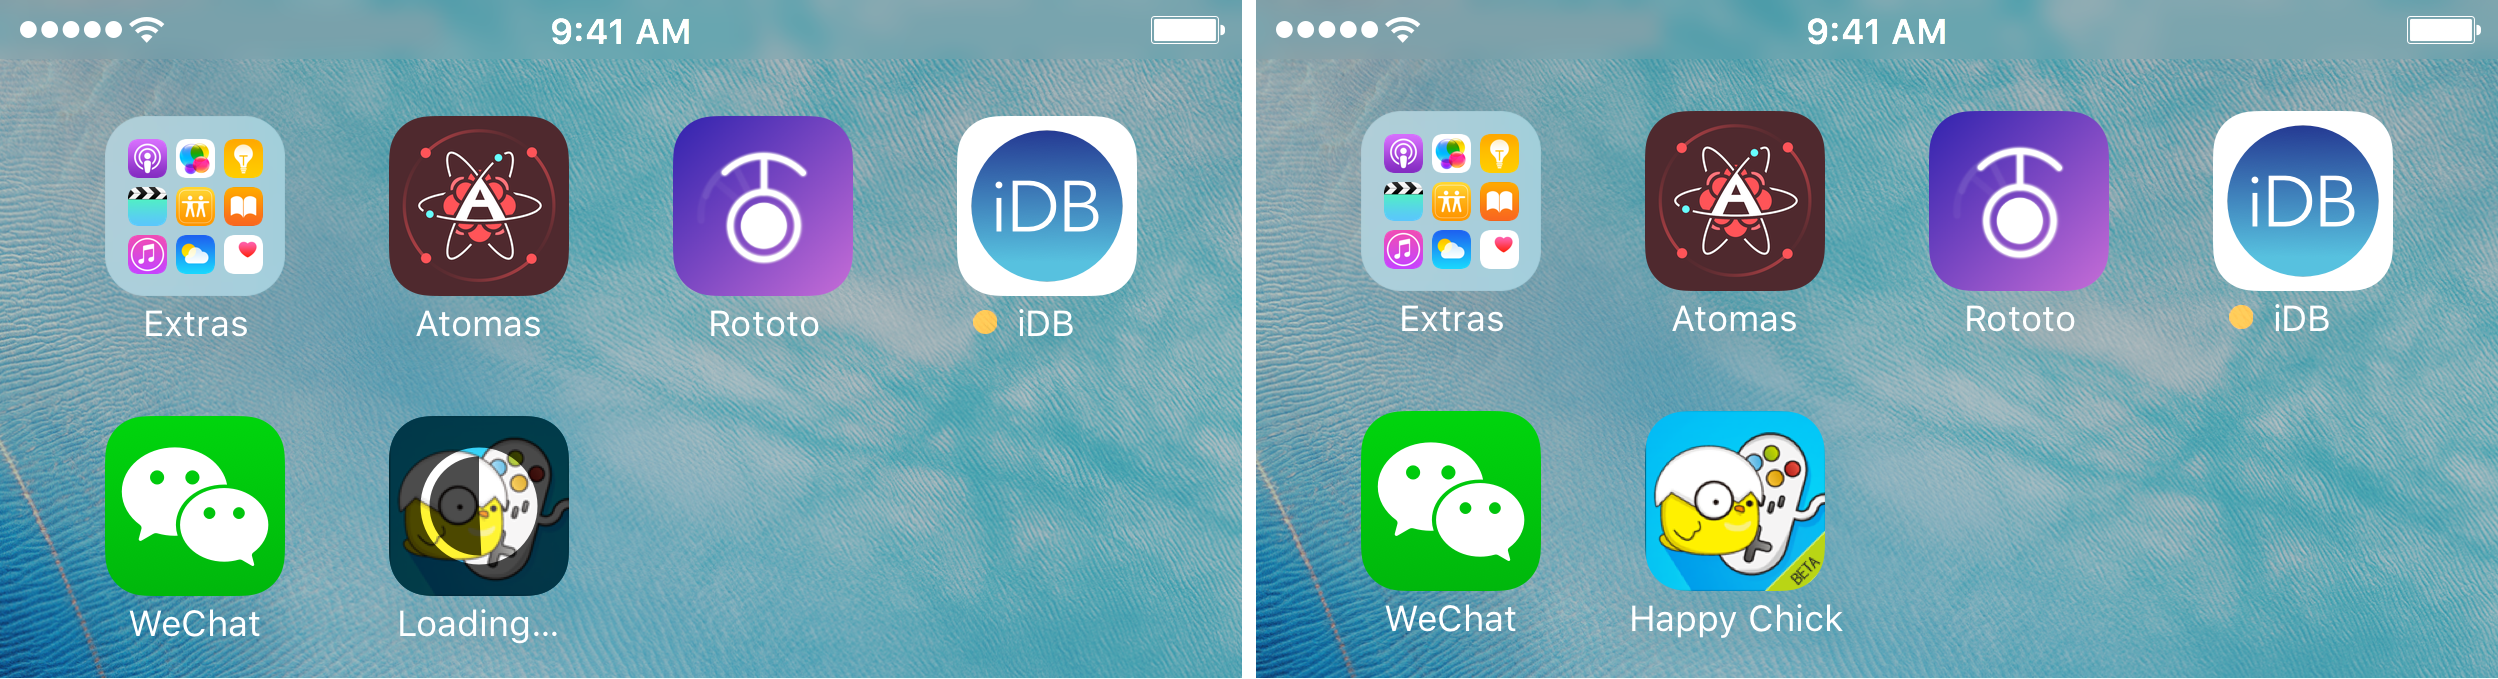 wechat emulator install on home screen